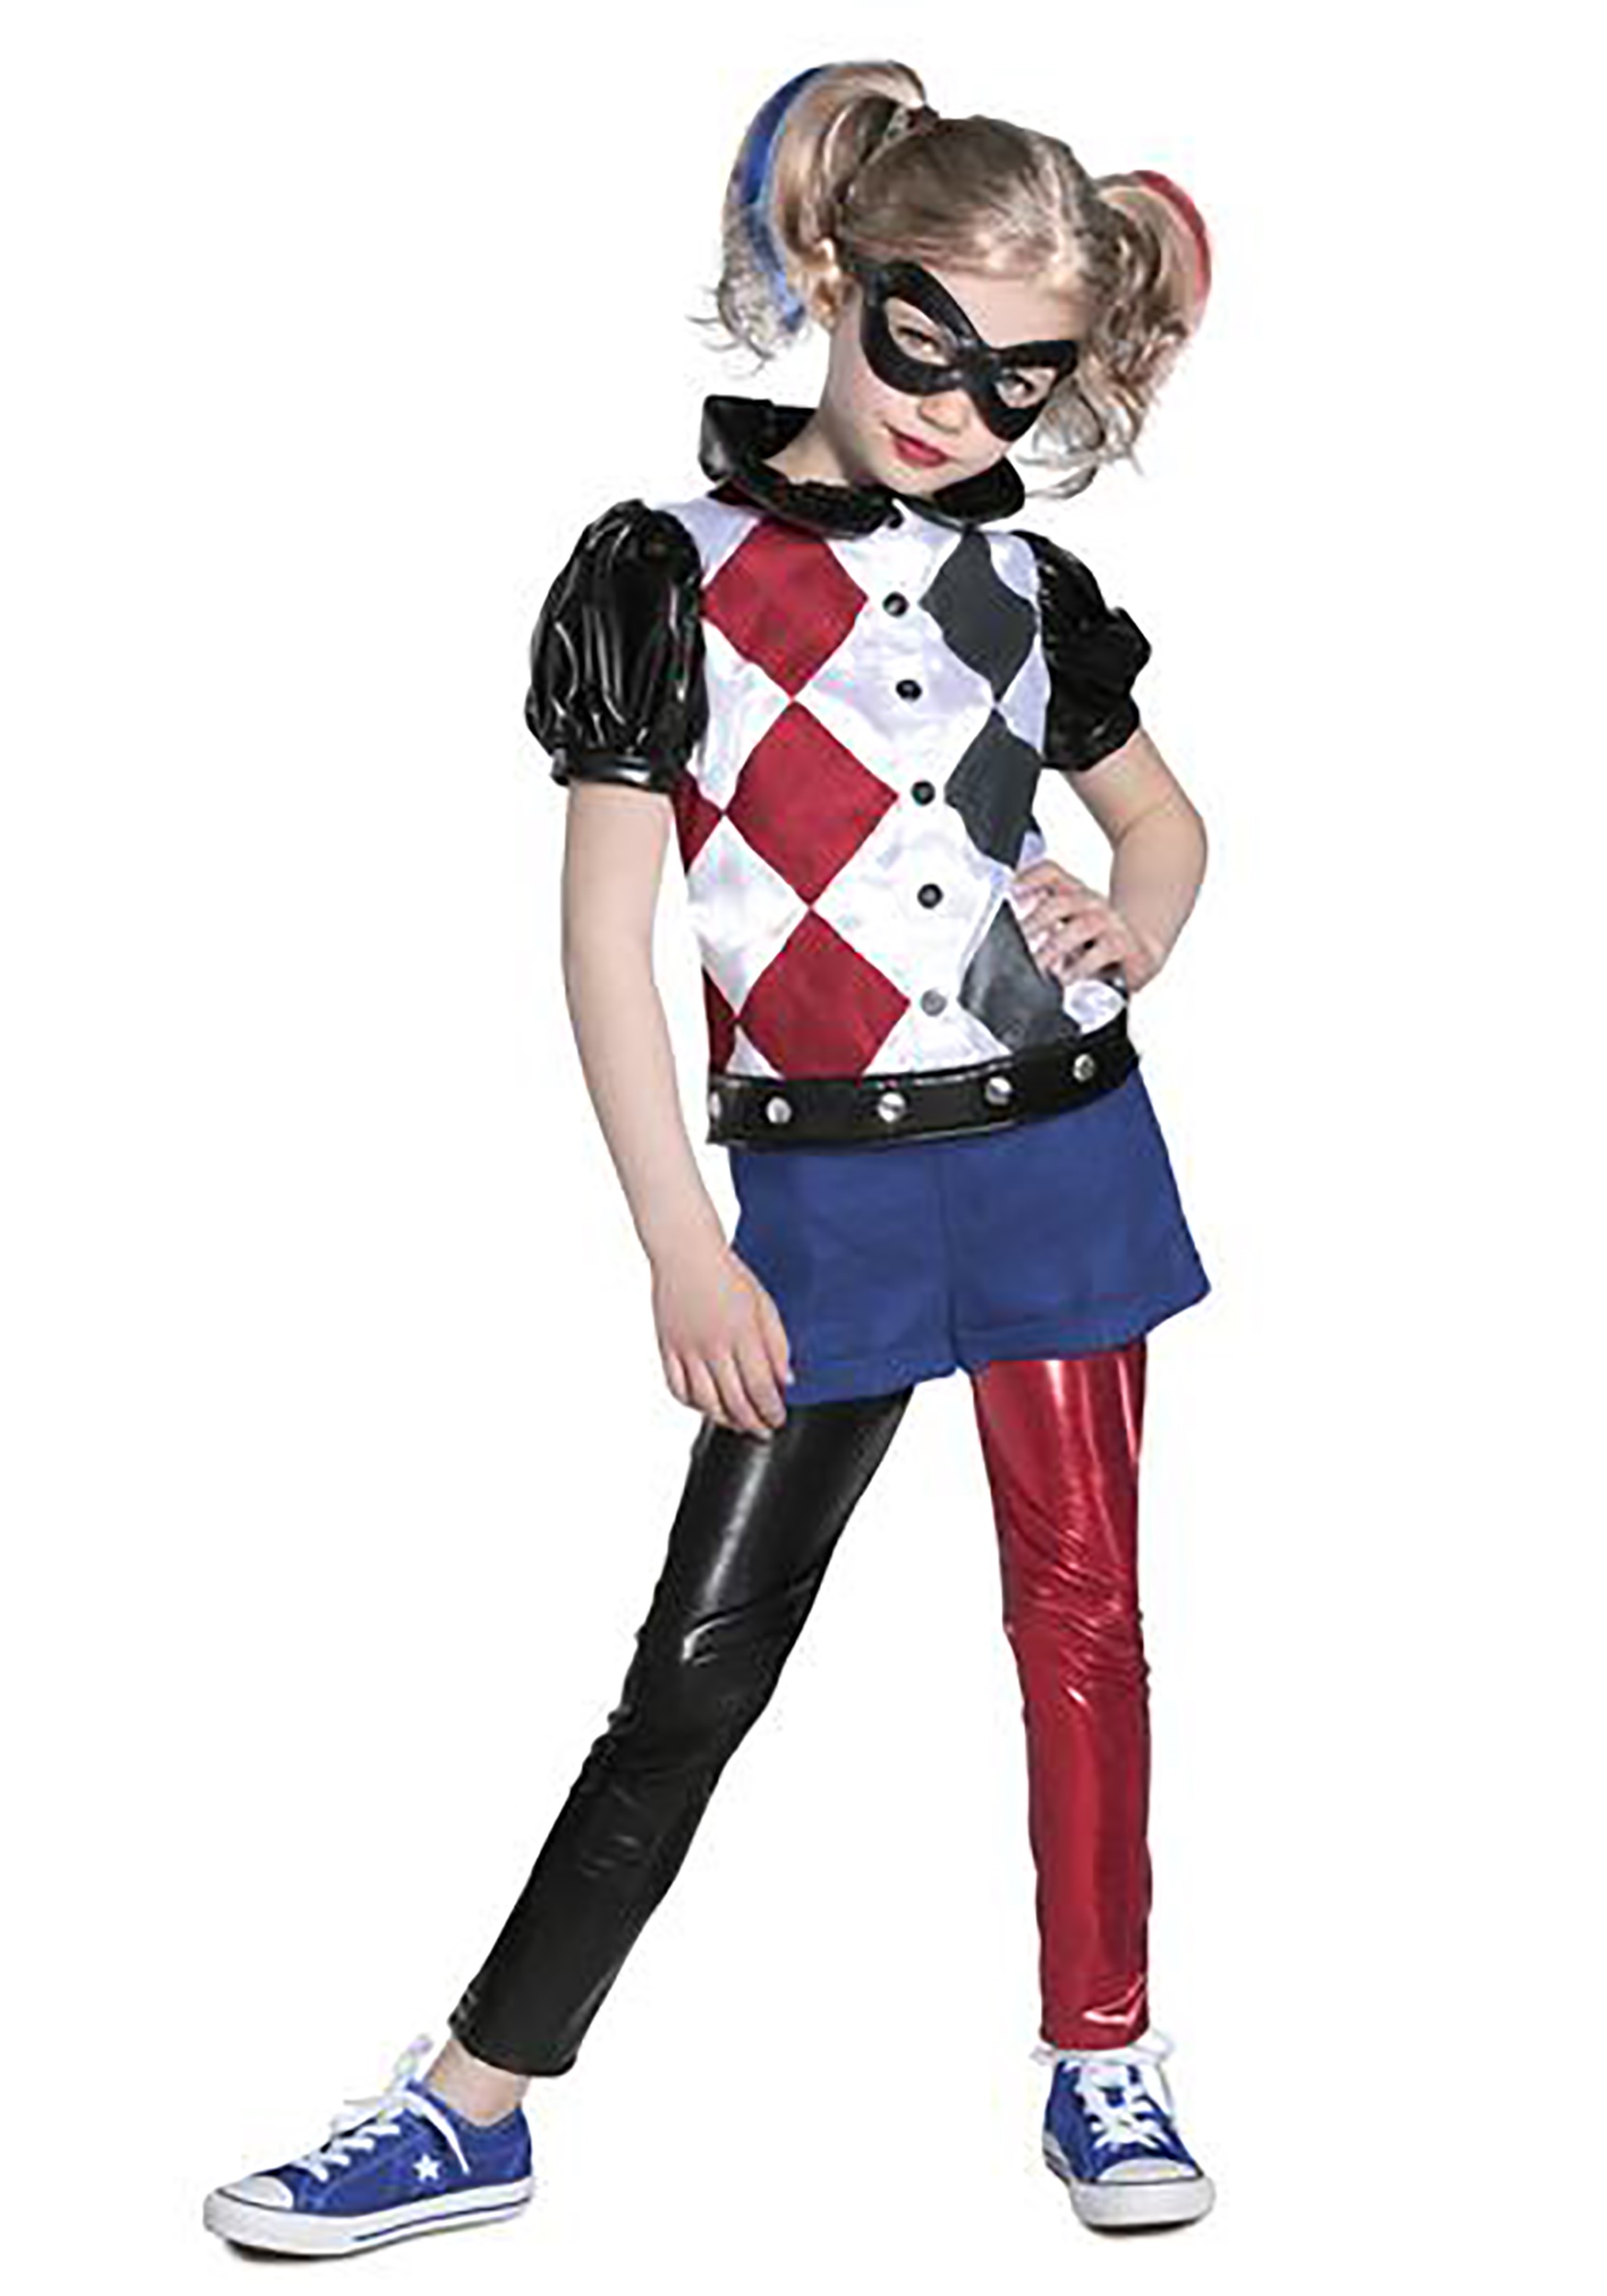 DC Superhero Girlu0027s Premium Harley Quinn Costume  sc 1 st  Halloween Costumes : superheroes girls costume  - Germanpascual.Com